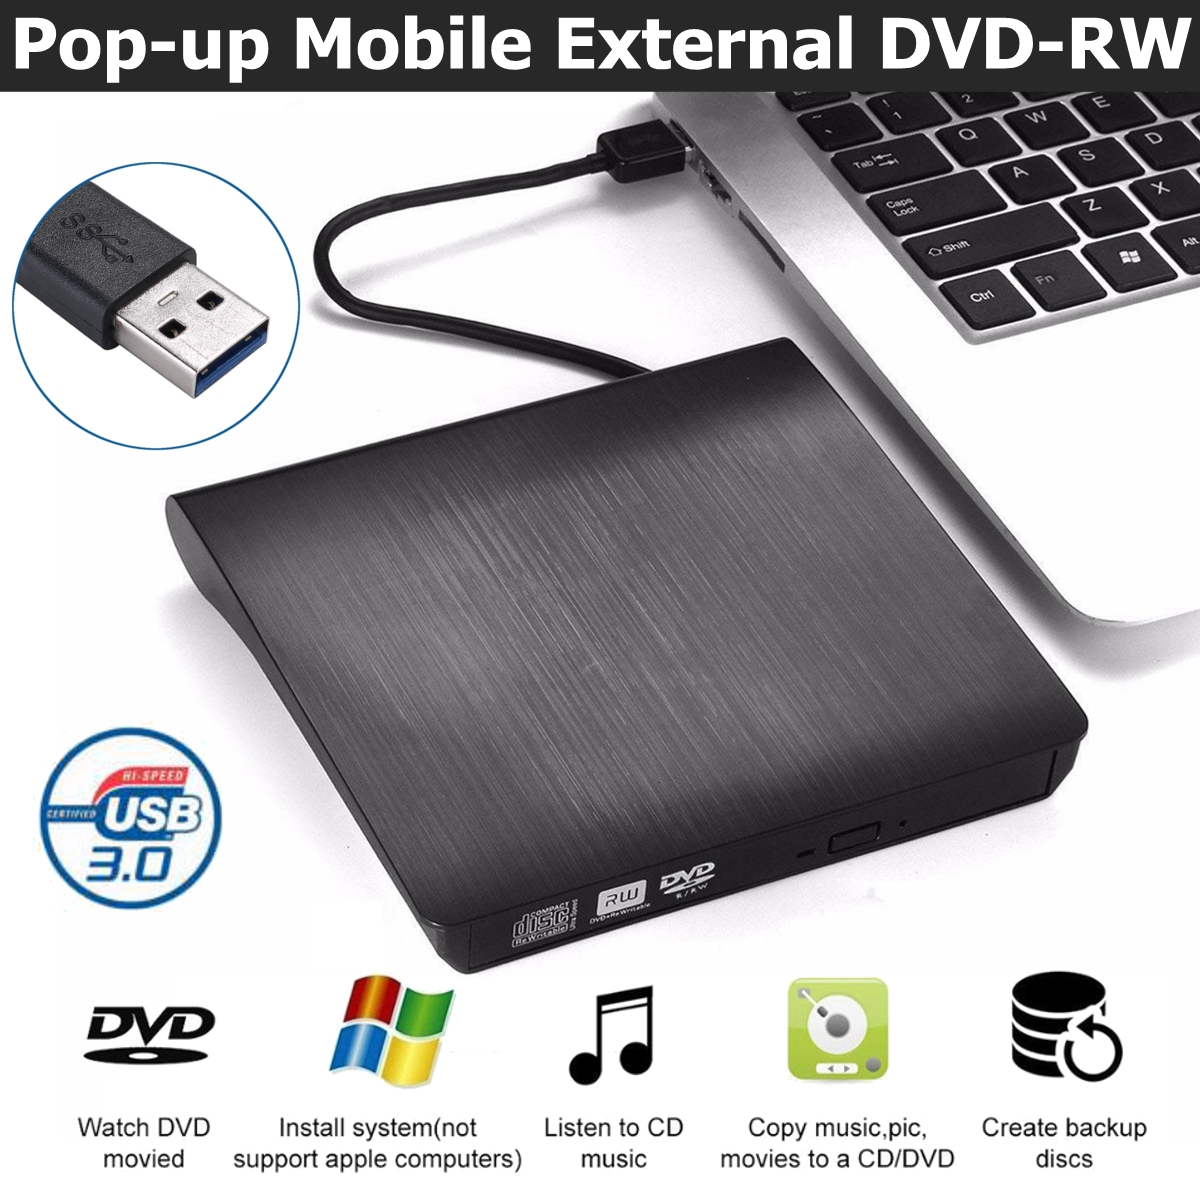 USB 3.0 Externo Slim DVD RW CD Burner Escritor Leitor Player Optical Drives Para Computador Portátil PC